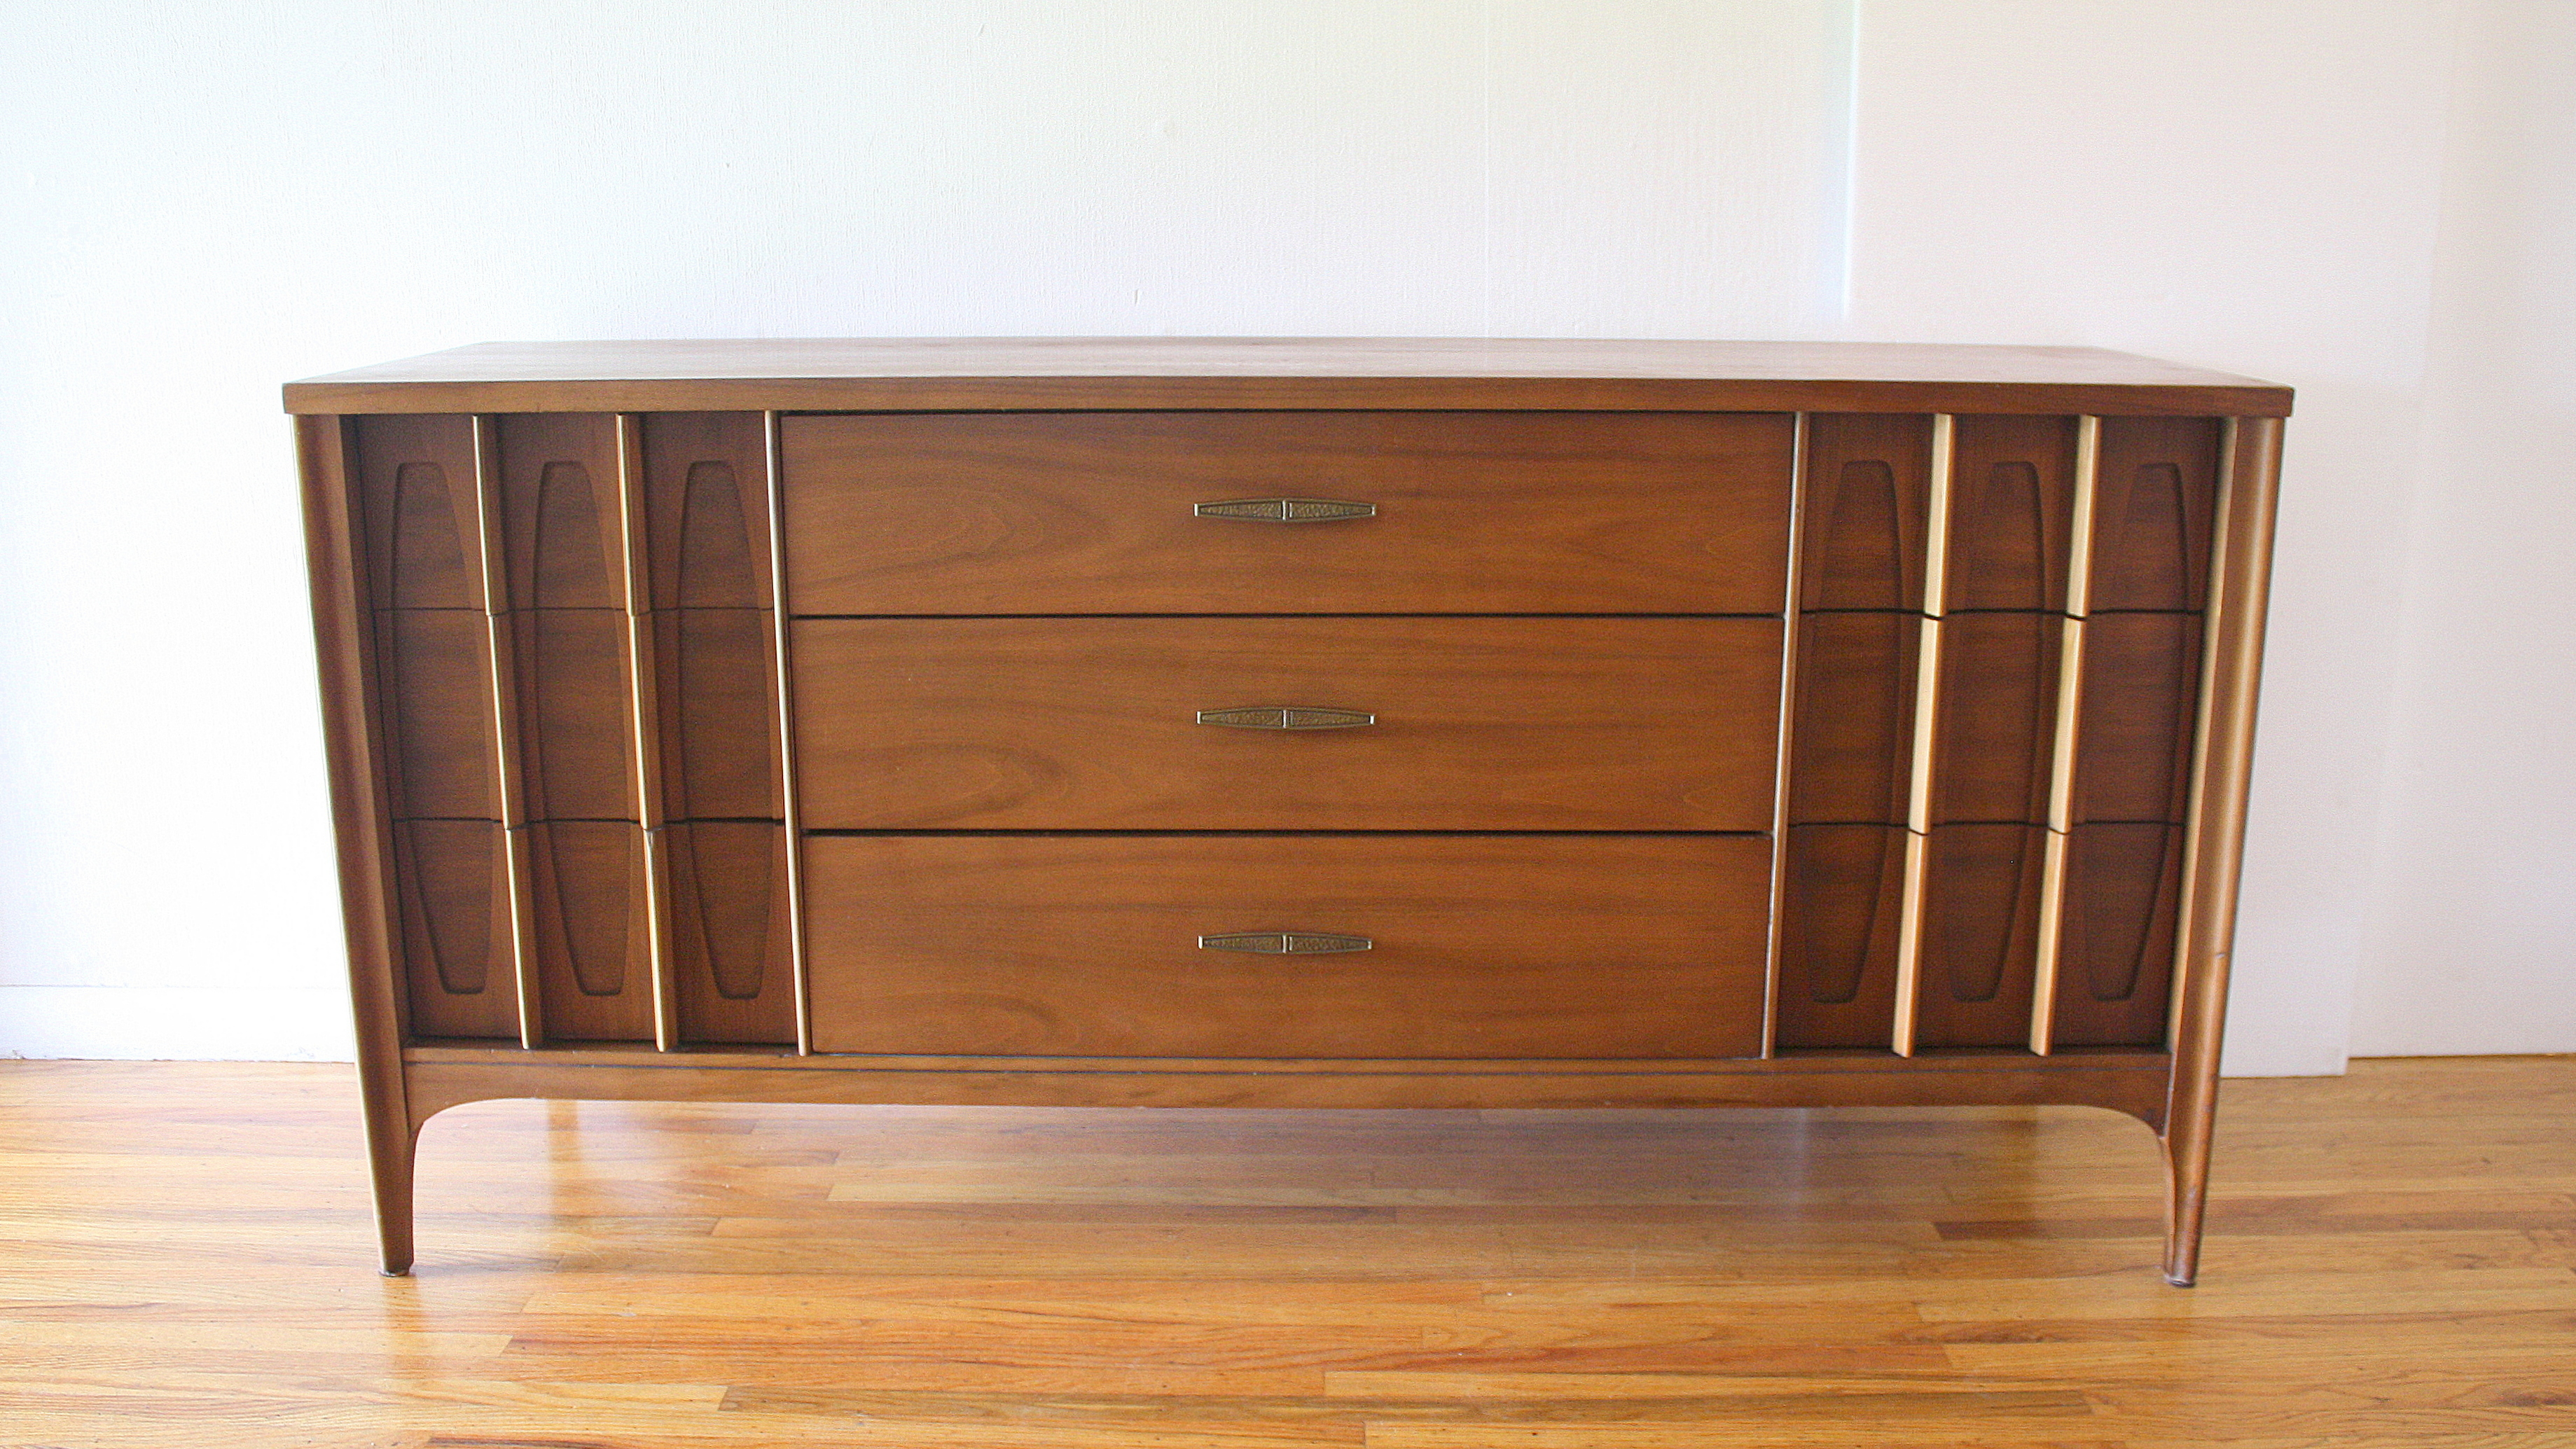 mcm low dresser credenza with sculpted drawers 1.JPG